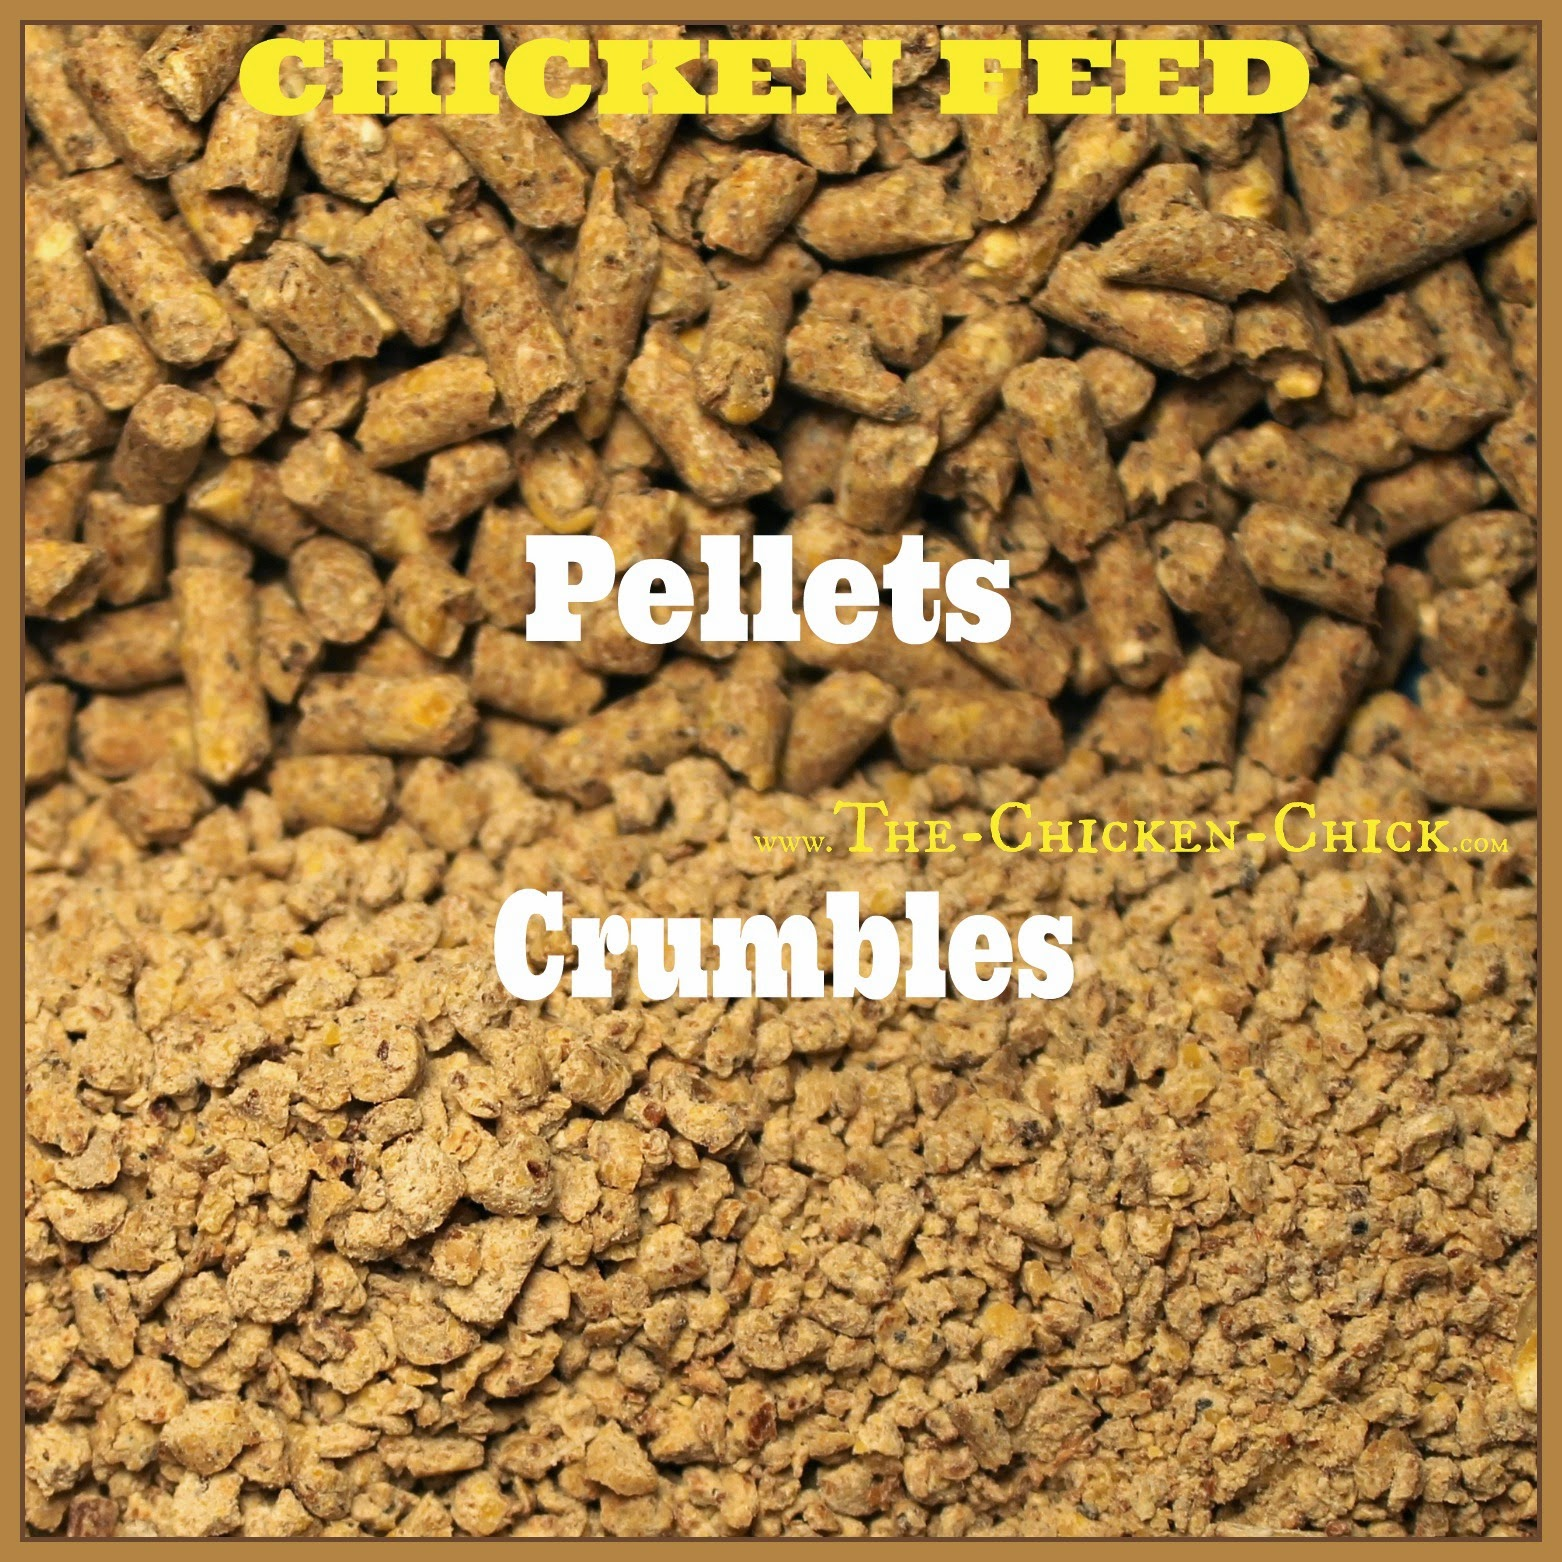 Provide feed in crumbles form instead of pellets to extend the amount of time birds spend pecking up feed to satisfy their appetites.